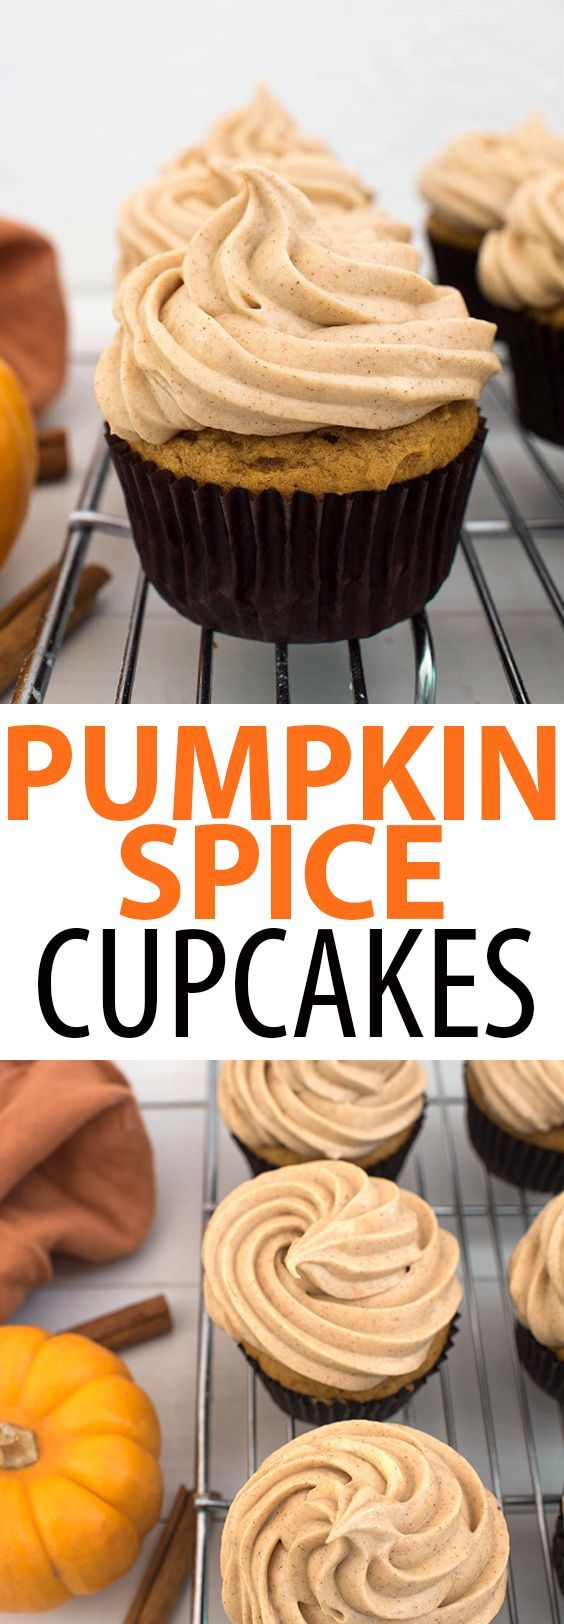 Pumpkin Spice Cupcakes with a Brown Sugar Cinnamon Cream Cheese Frosting. Tender and moist, these pumpkin cupcakes are perfect if you're craving a fall dessert! #fallrecipes #pumpkinrecipes #cupcake #cupcakerecipes #food #baking #love #desserts #cakes